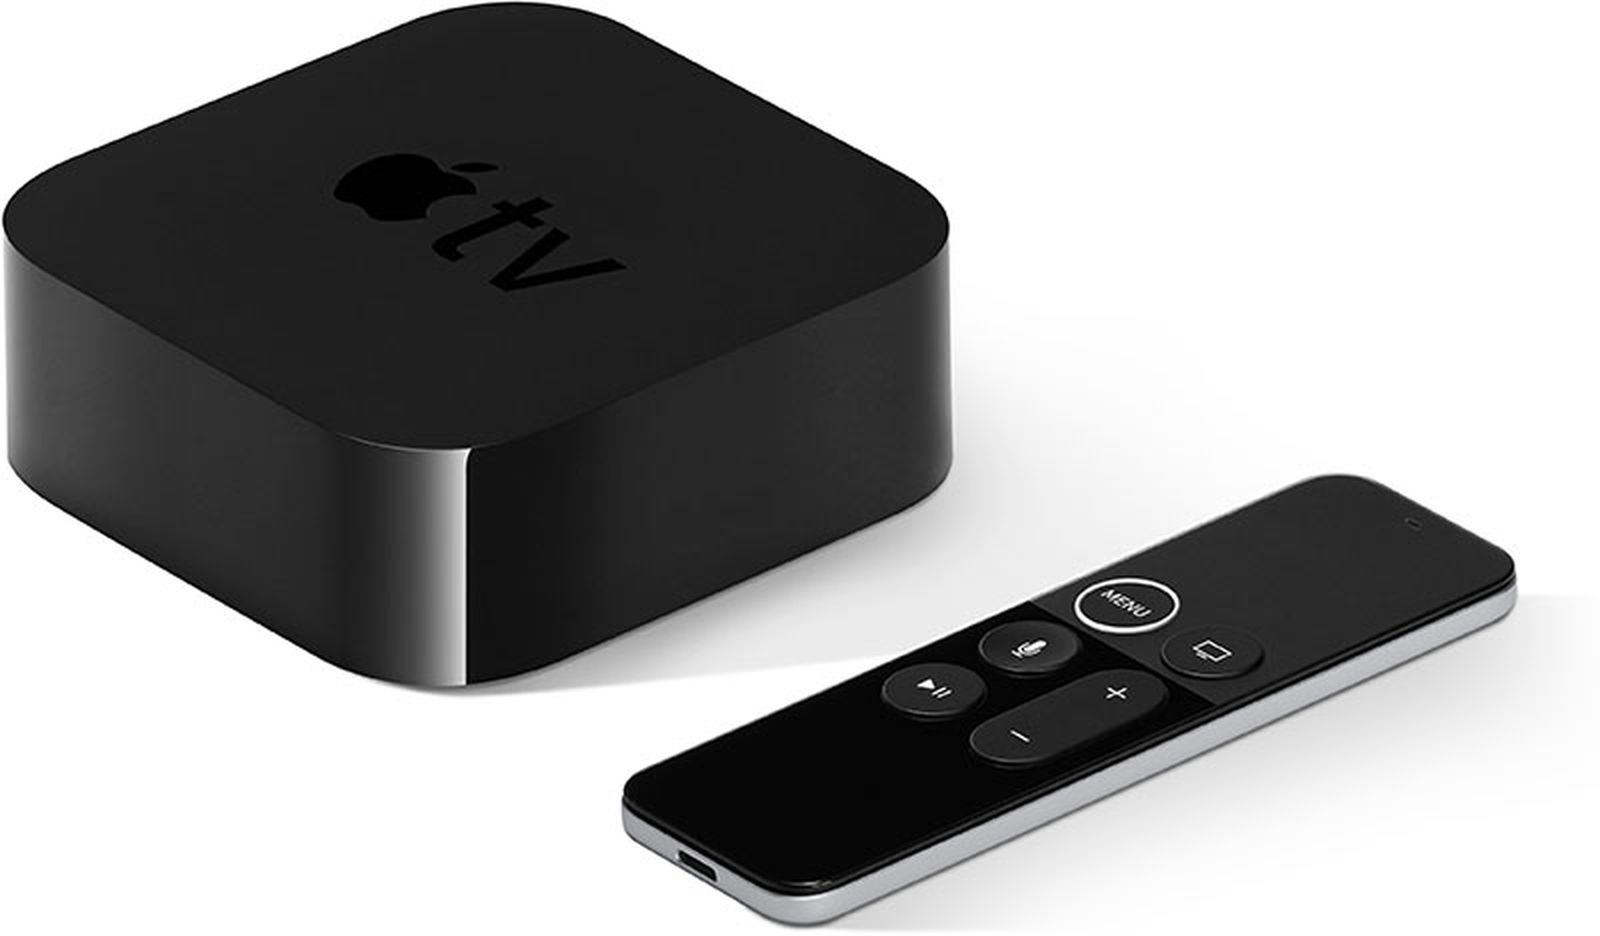 sản phẩm mới của apple apple tv spring loaded techtimes